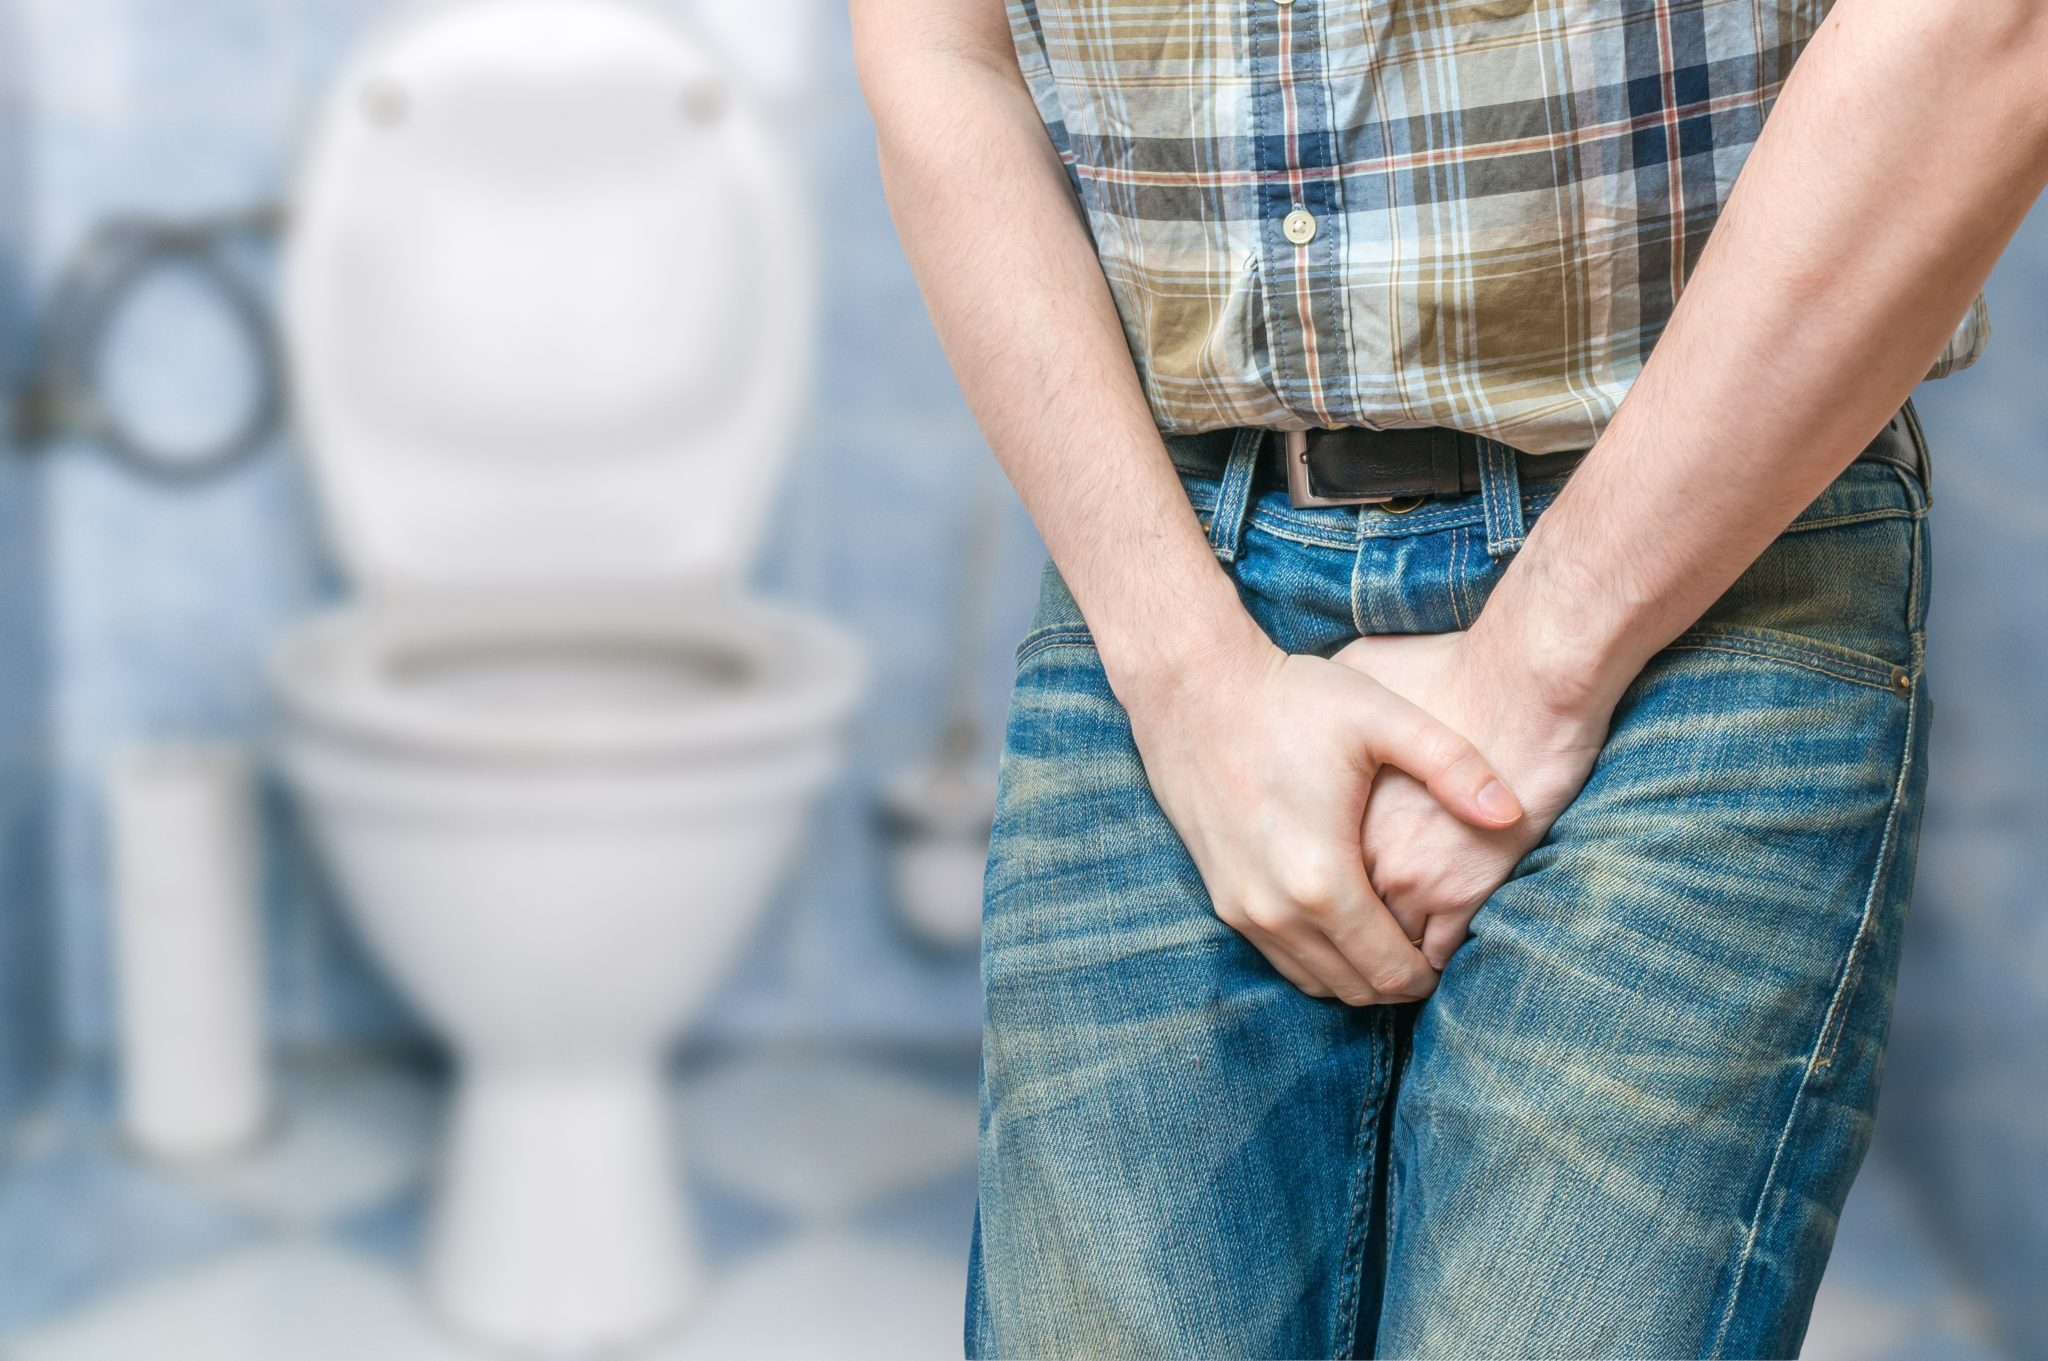 5 ways to deal with an enlarged prostate and nocturia